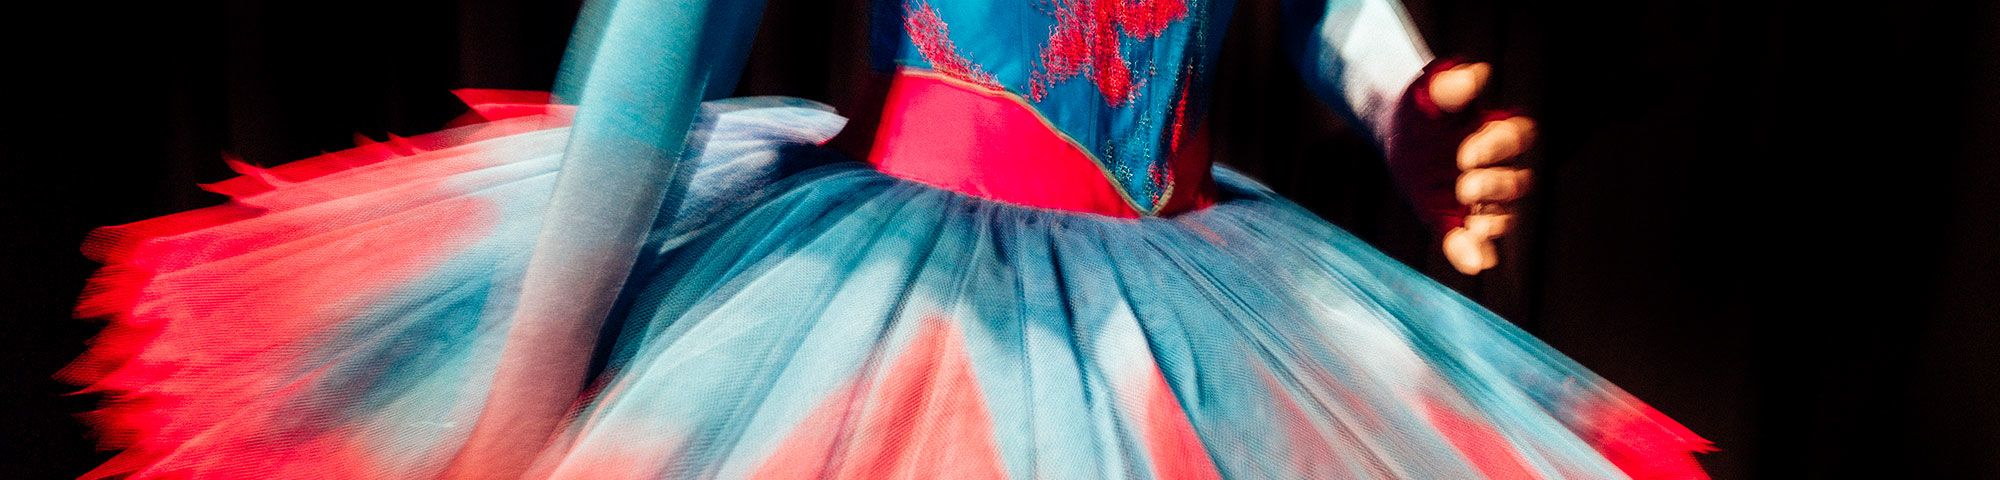 Dancer wearing red and blue costume.